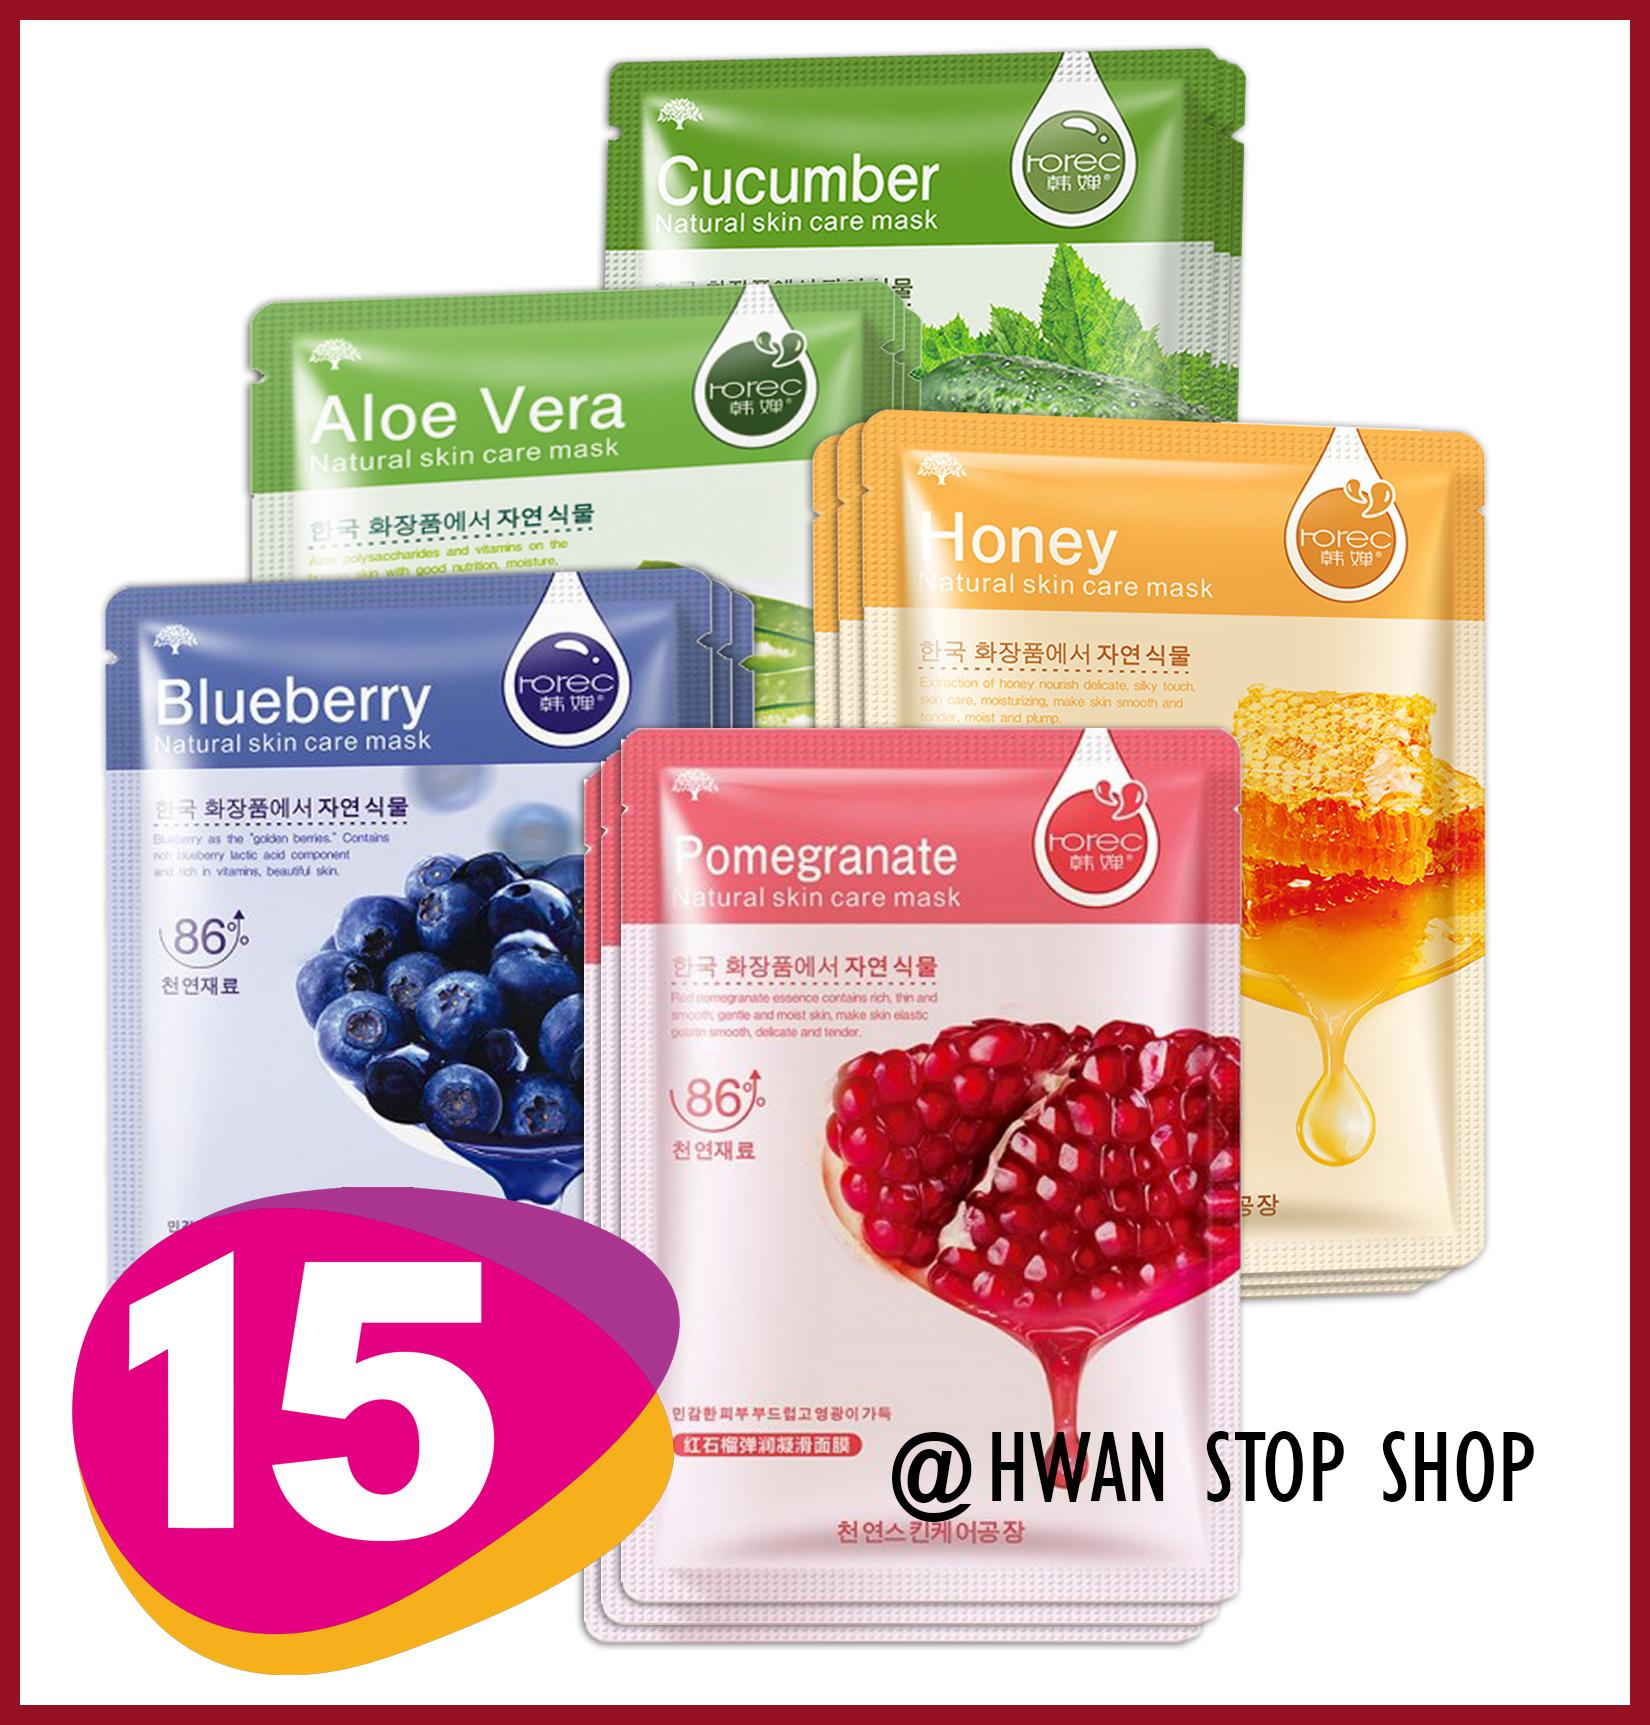 Invenme Korean Facial Mask Pack Of 10 100 Pure Cotton Cupra Rorec Natural Skin Care Pomegranate Authentic Face Set Assorted